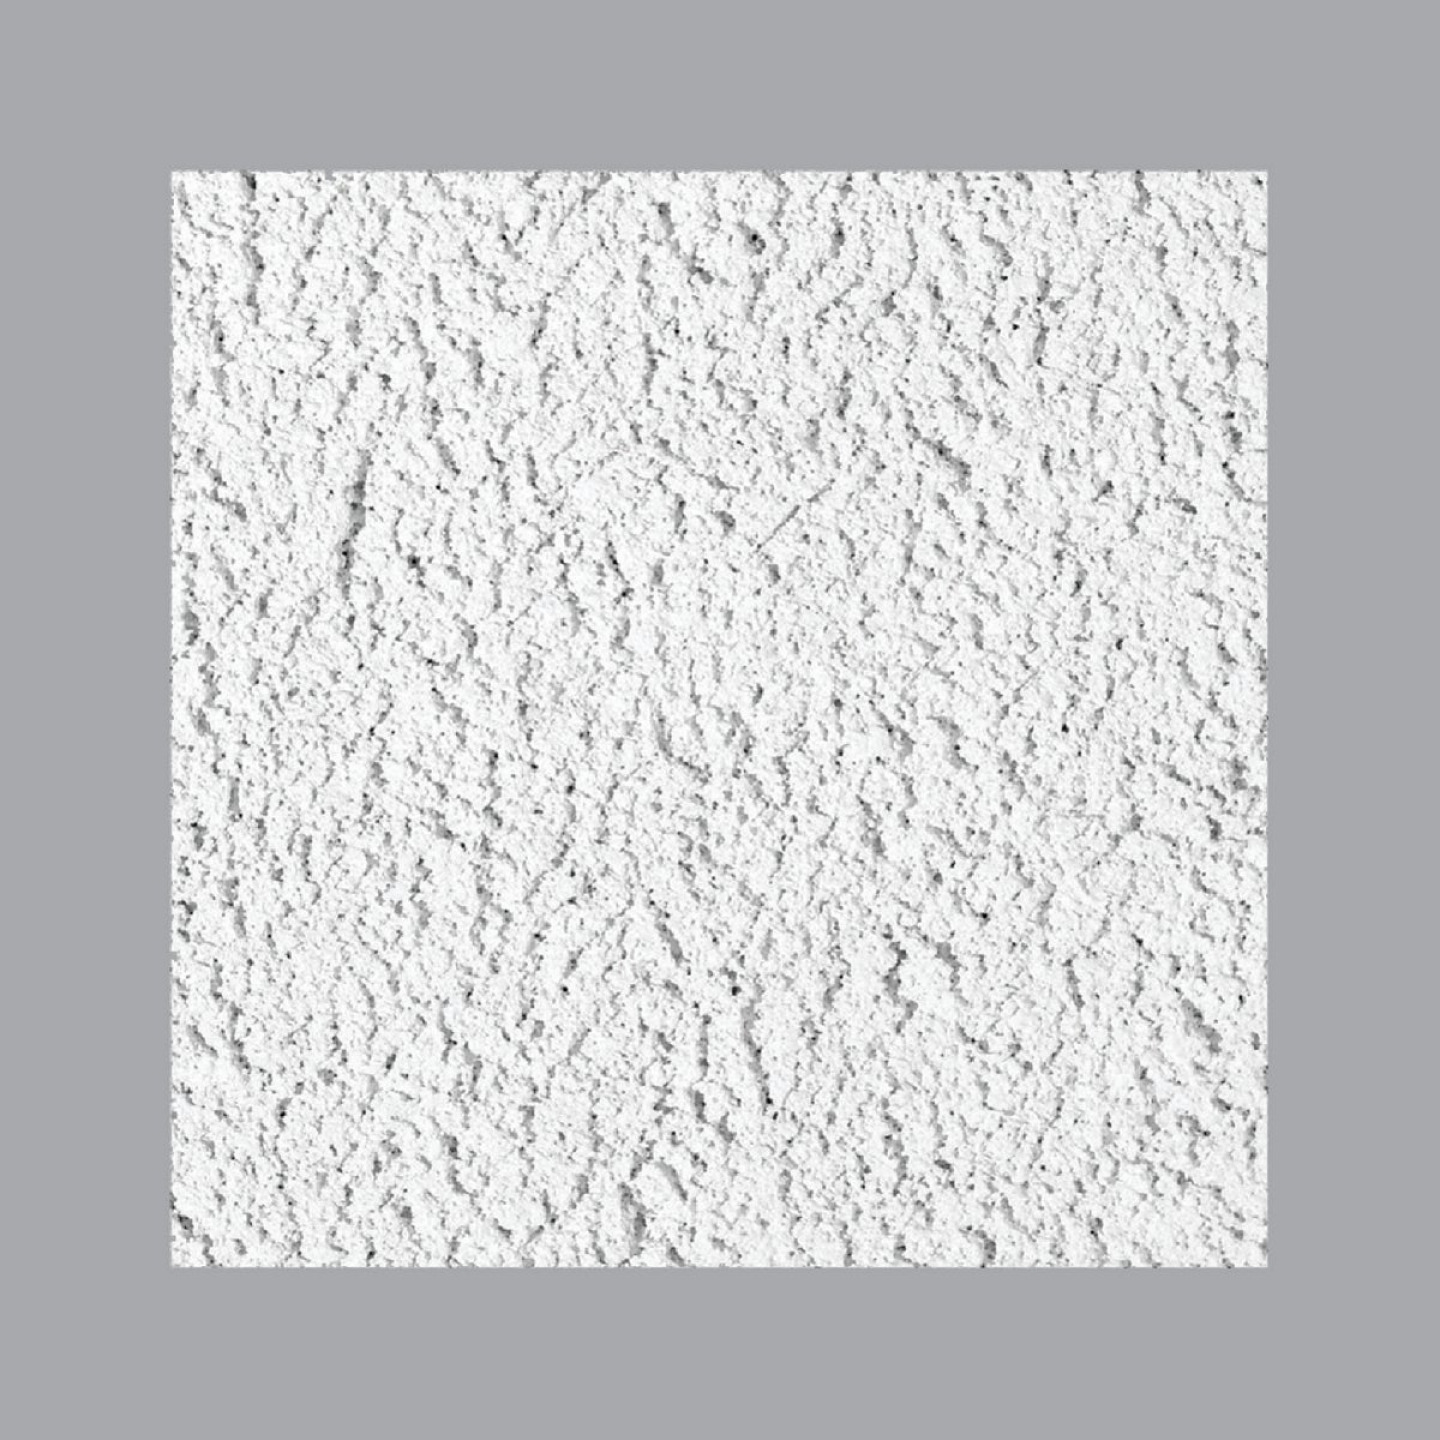 Cheyenne 2 Ft. x 2 Ft. White Cast Mineral Fiber Ceiling Tile (8-Count) Image 2